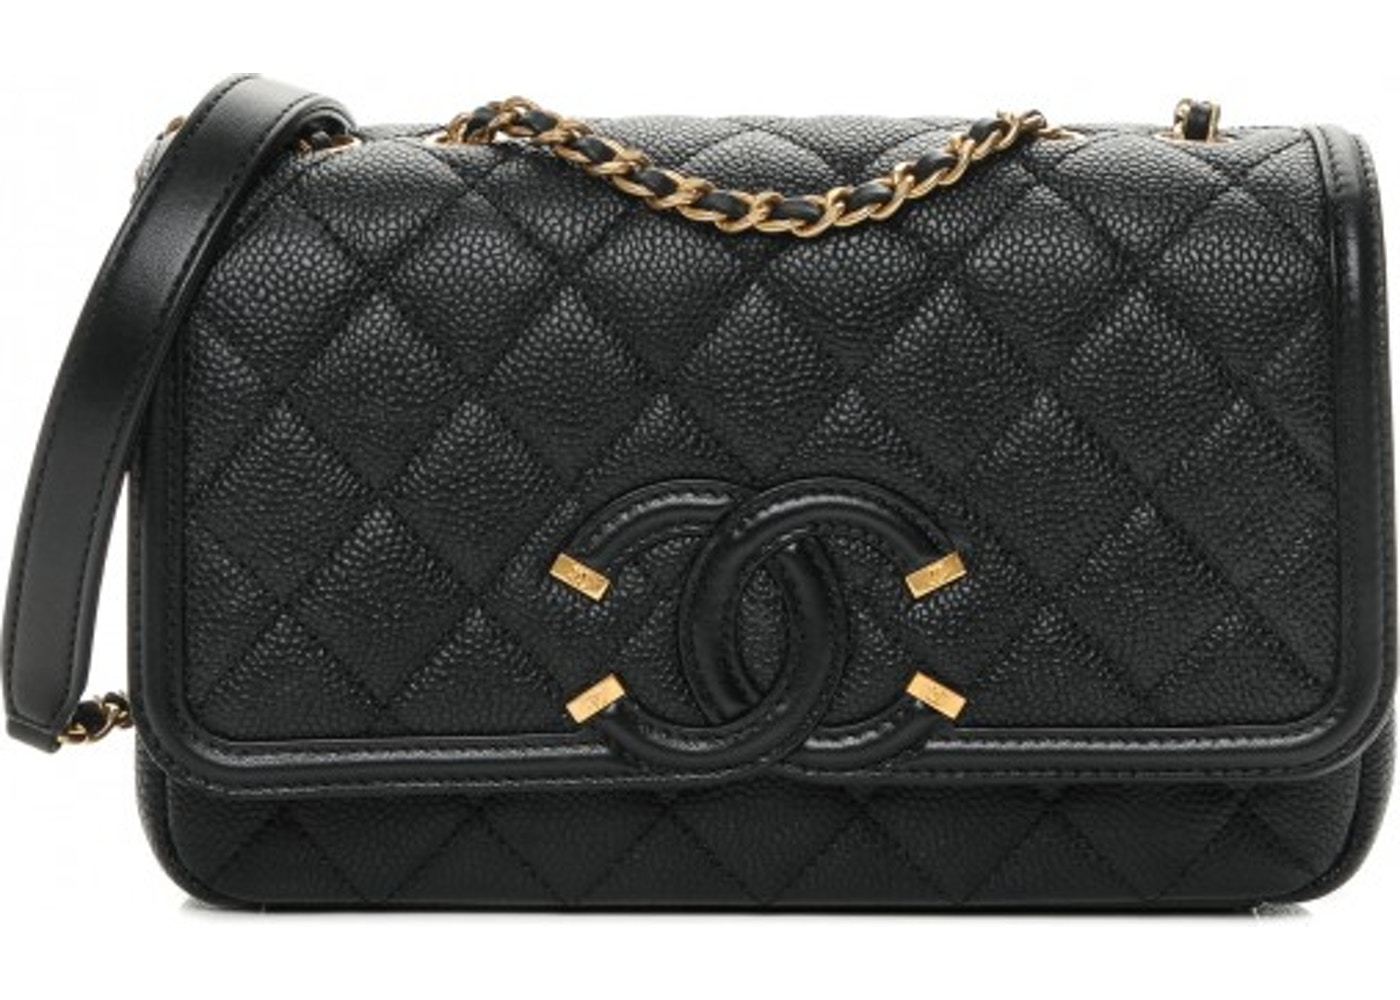 3ef261ff3fb5 Chanel Flap Cc Filigree Quilted Small Black